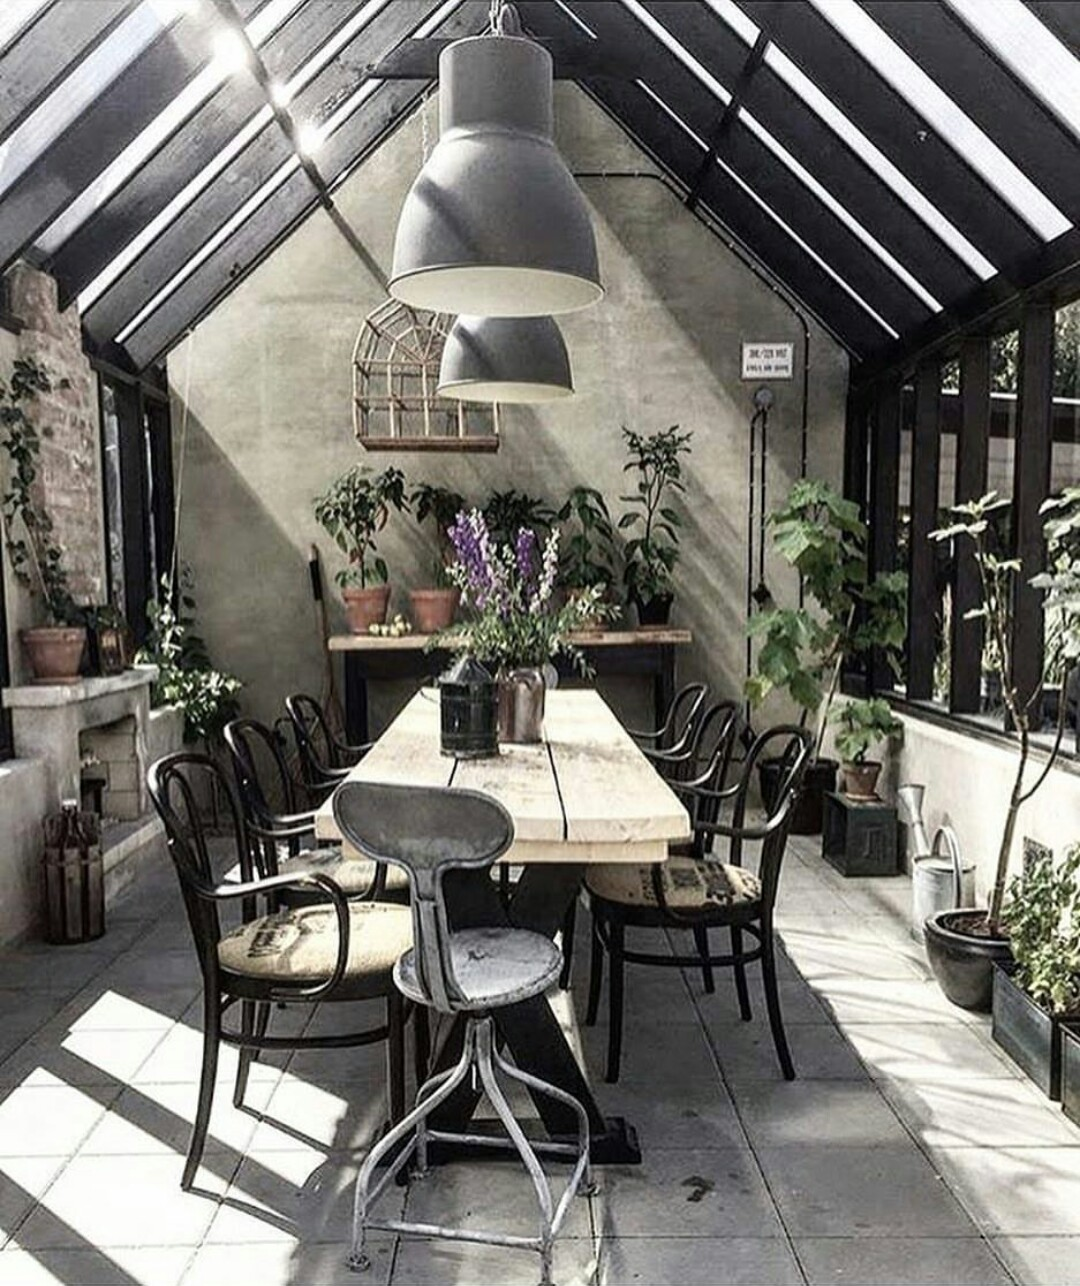 An industrial potting shed.